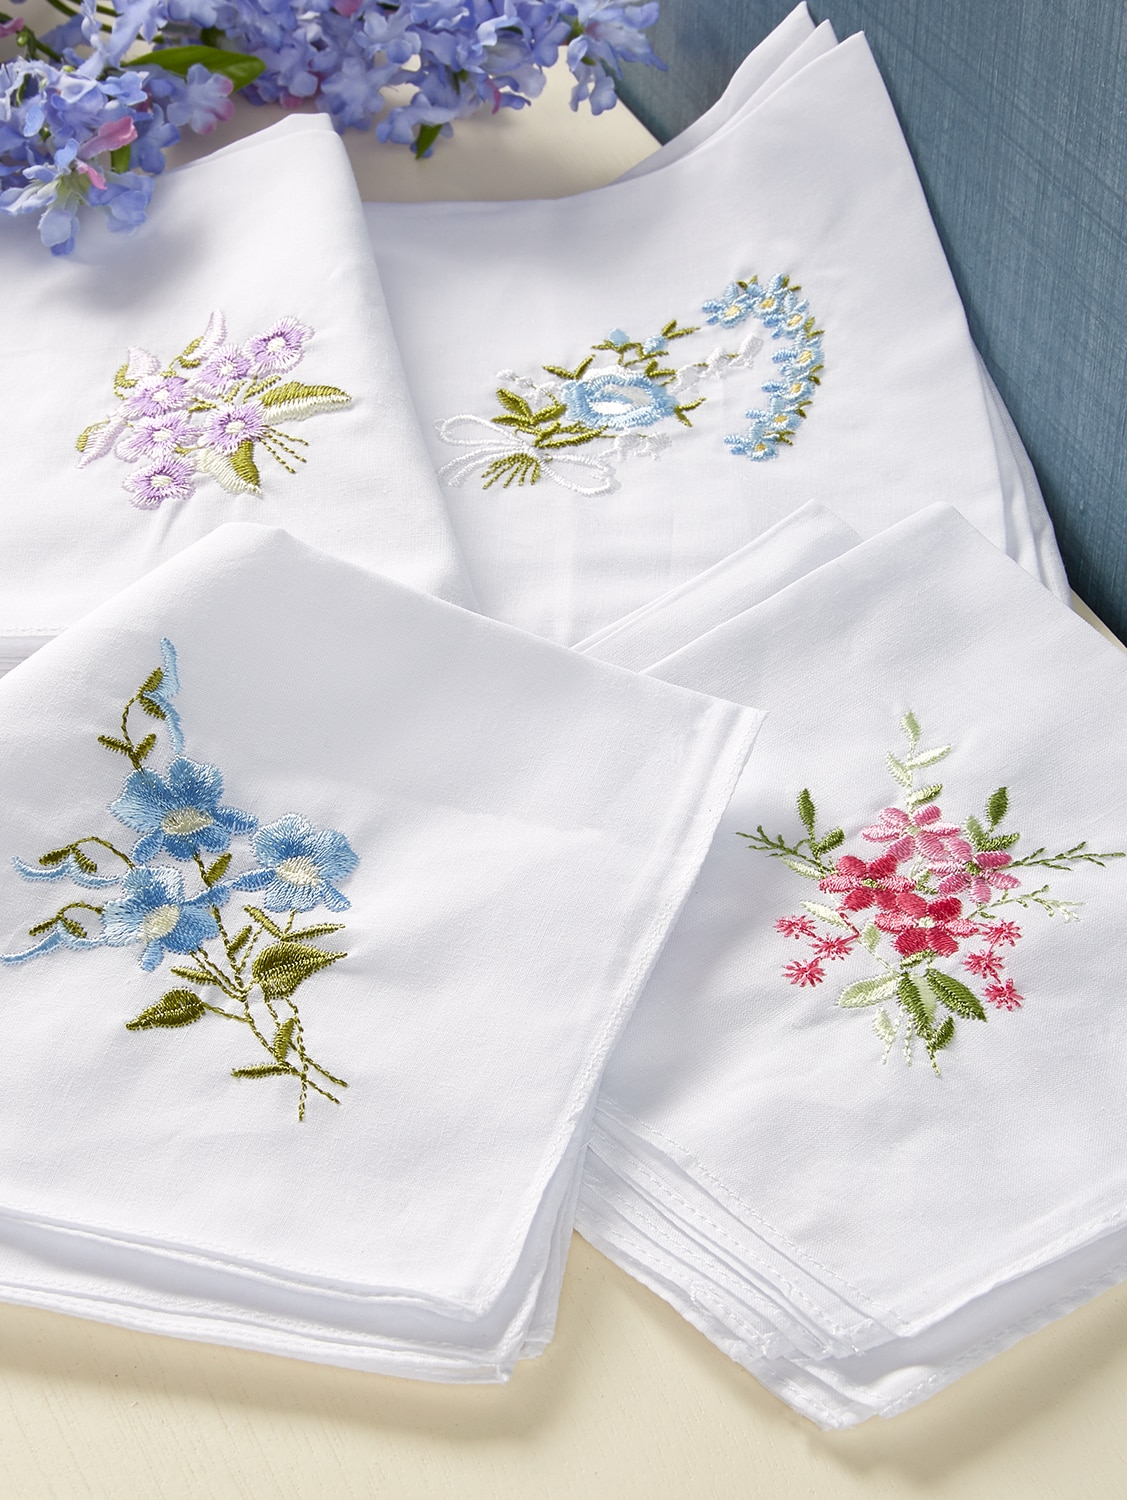 WOMENS LADIES 100/% COTTON 3 PACK HANDKERCHIEFS EMBROIDERY HANKIES GIFT BOX